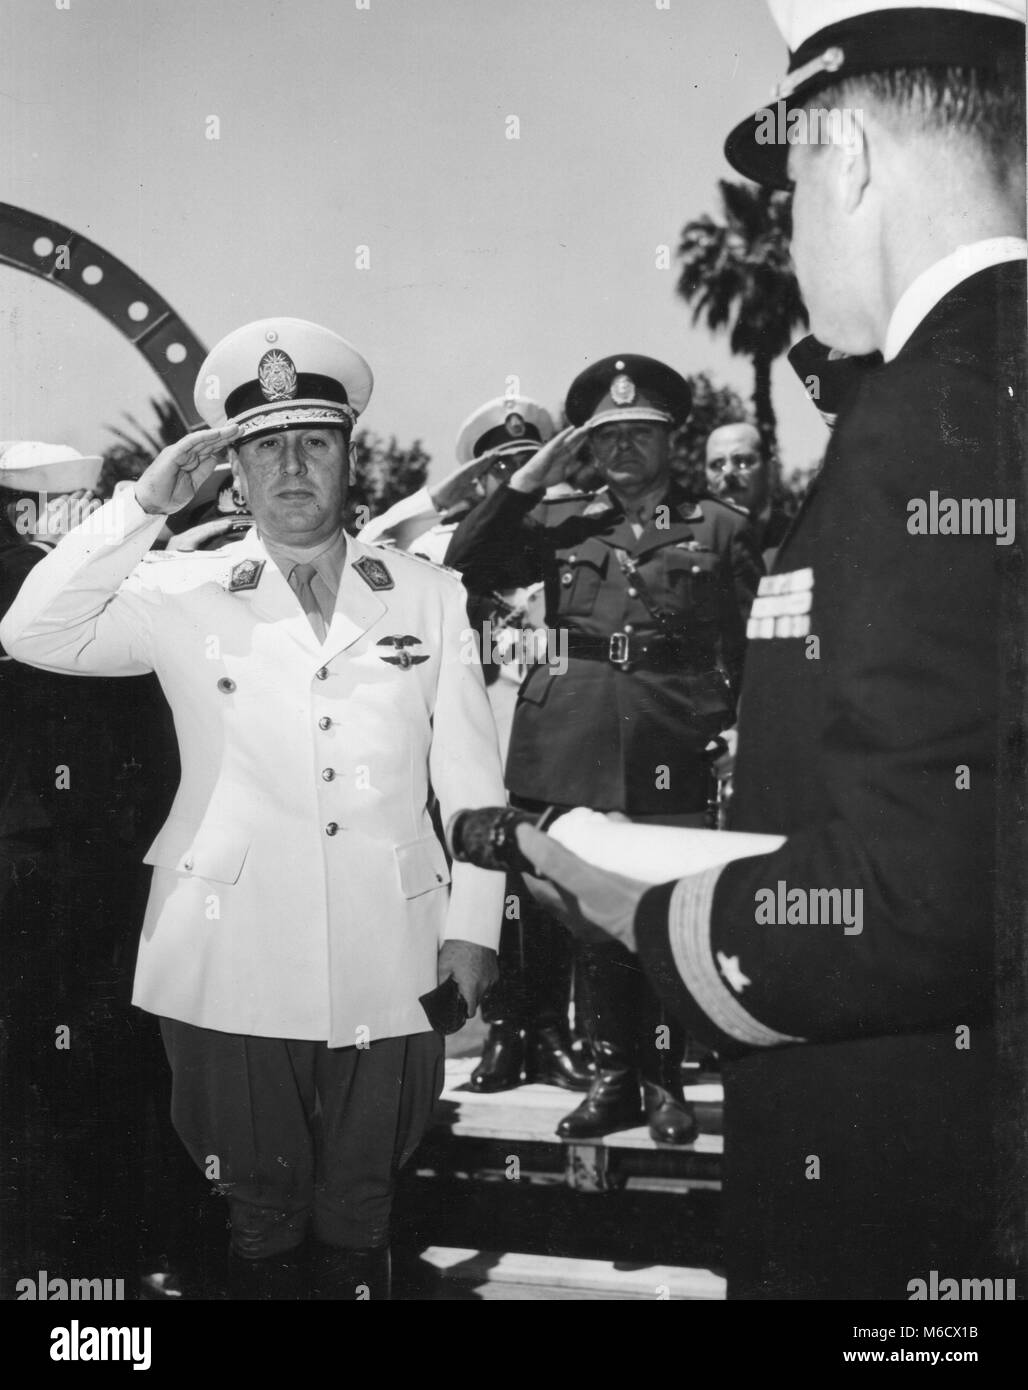 Juan Peron, President of Argentina, is shown receiving honors as he came aboard the USS HUNTINGTON on a good will - Stock Image